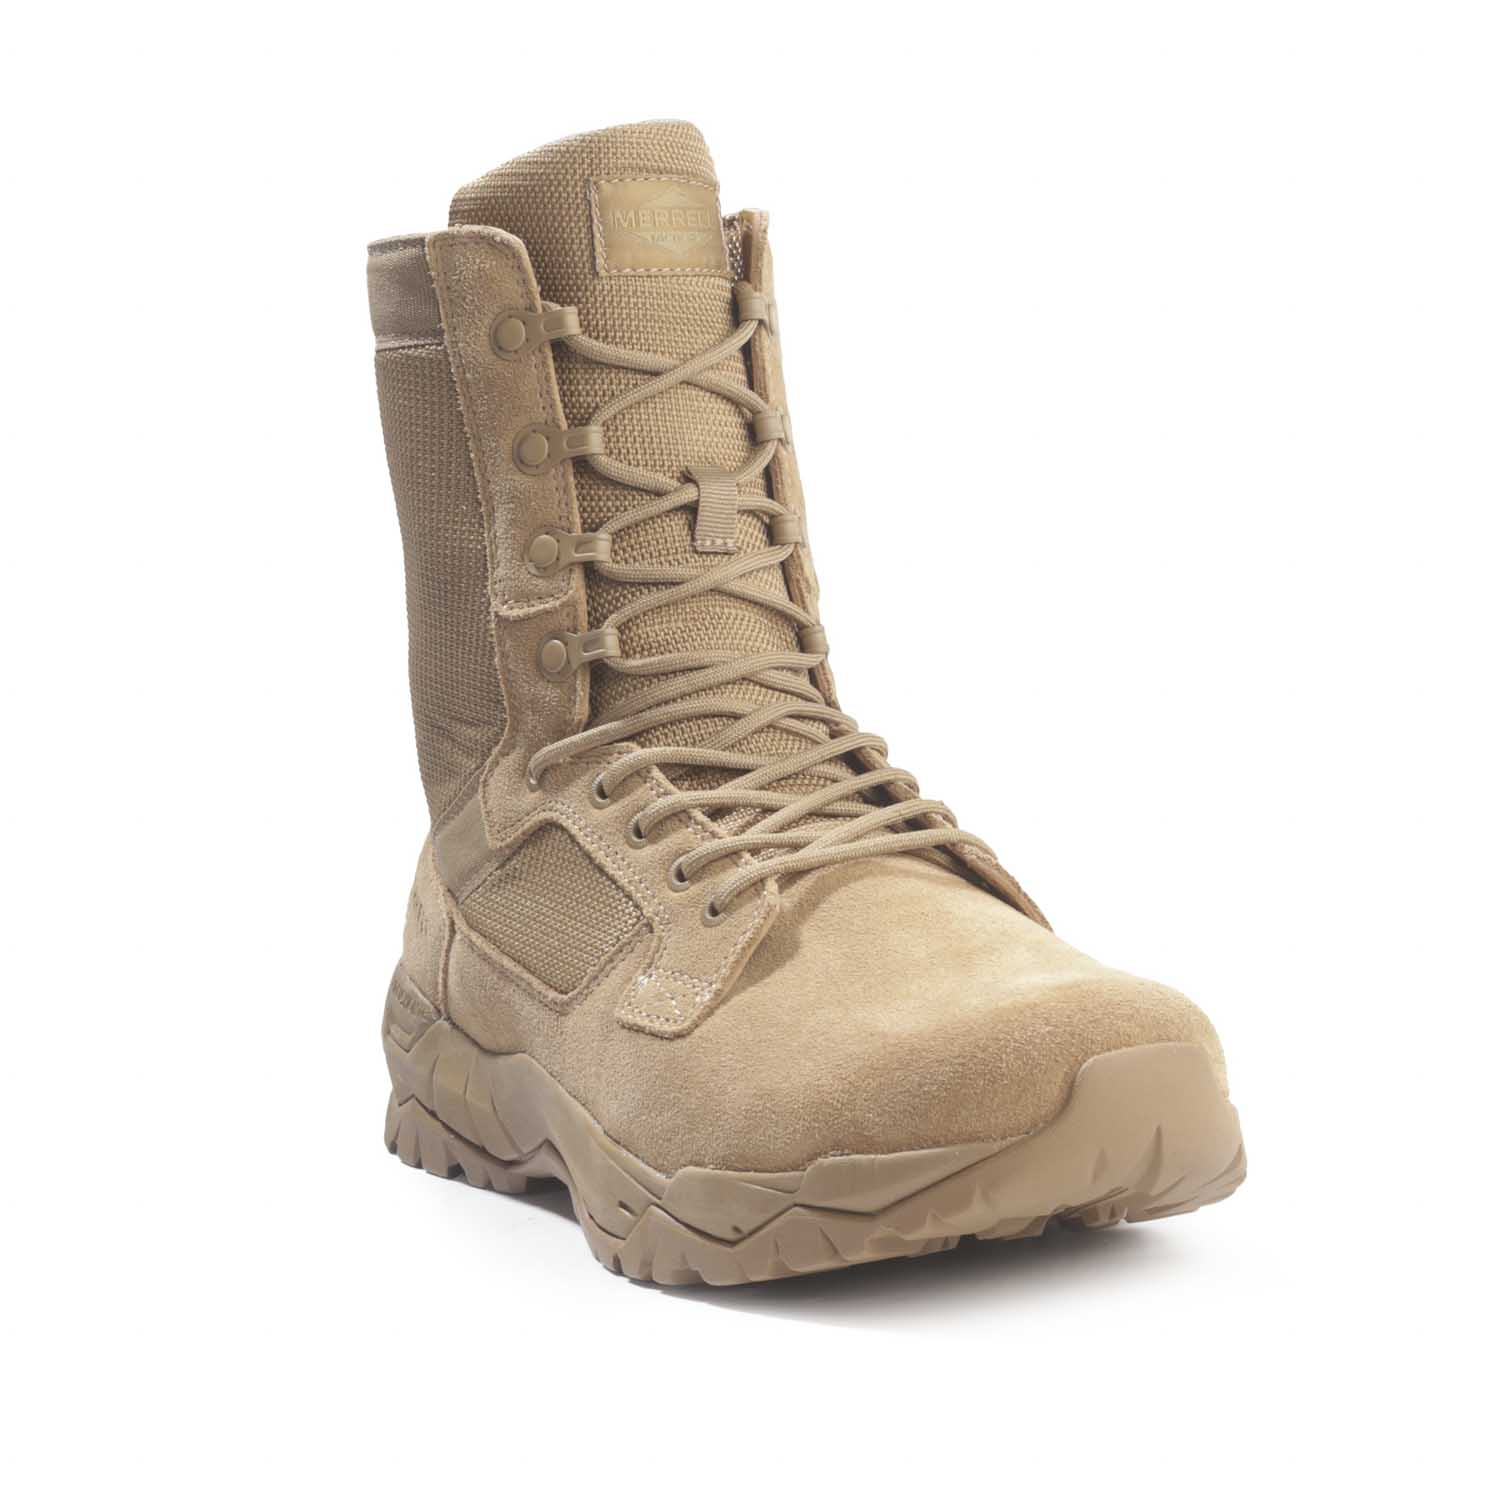 Merrell MQC Tactical AR670-1 Unisex Boot